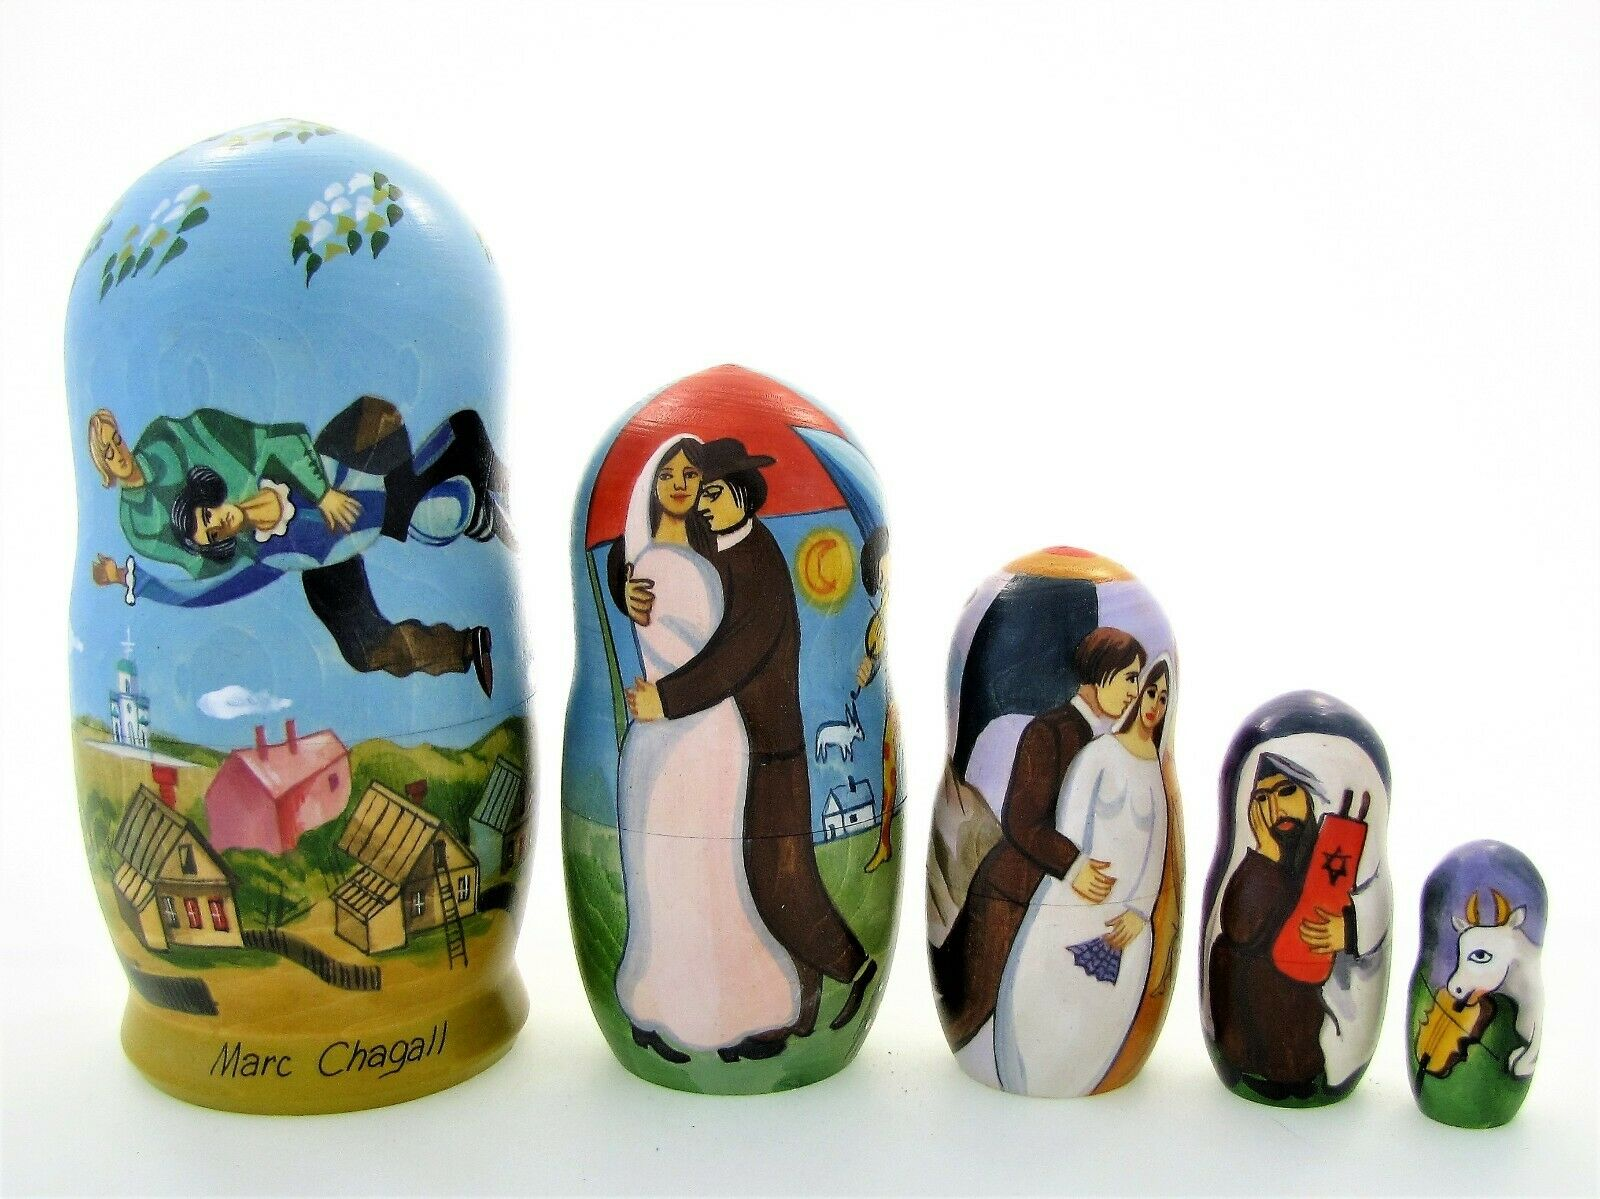 5 Poupées russes exclusive H18 Marc Chagall Matriochka Russian Doll Matrioshka